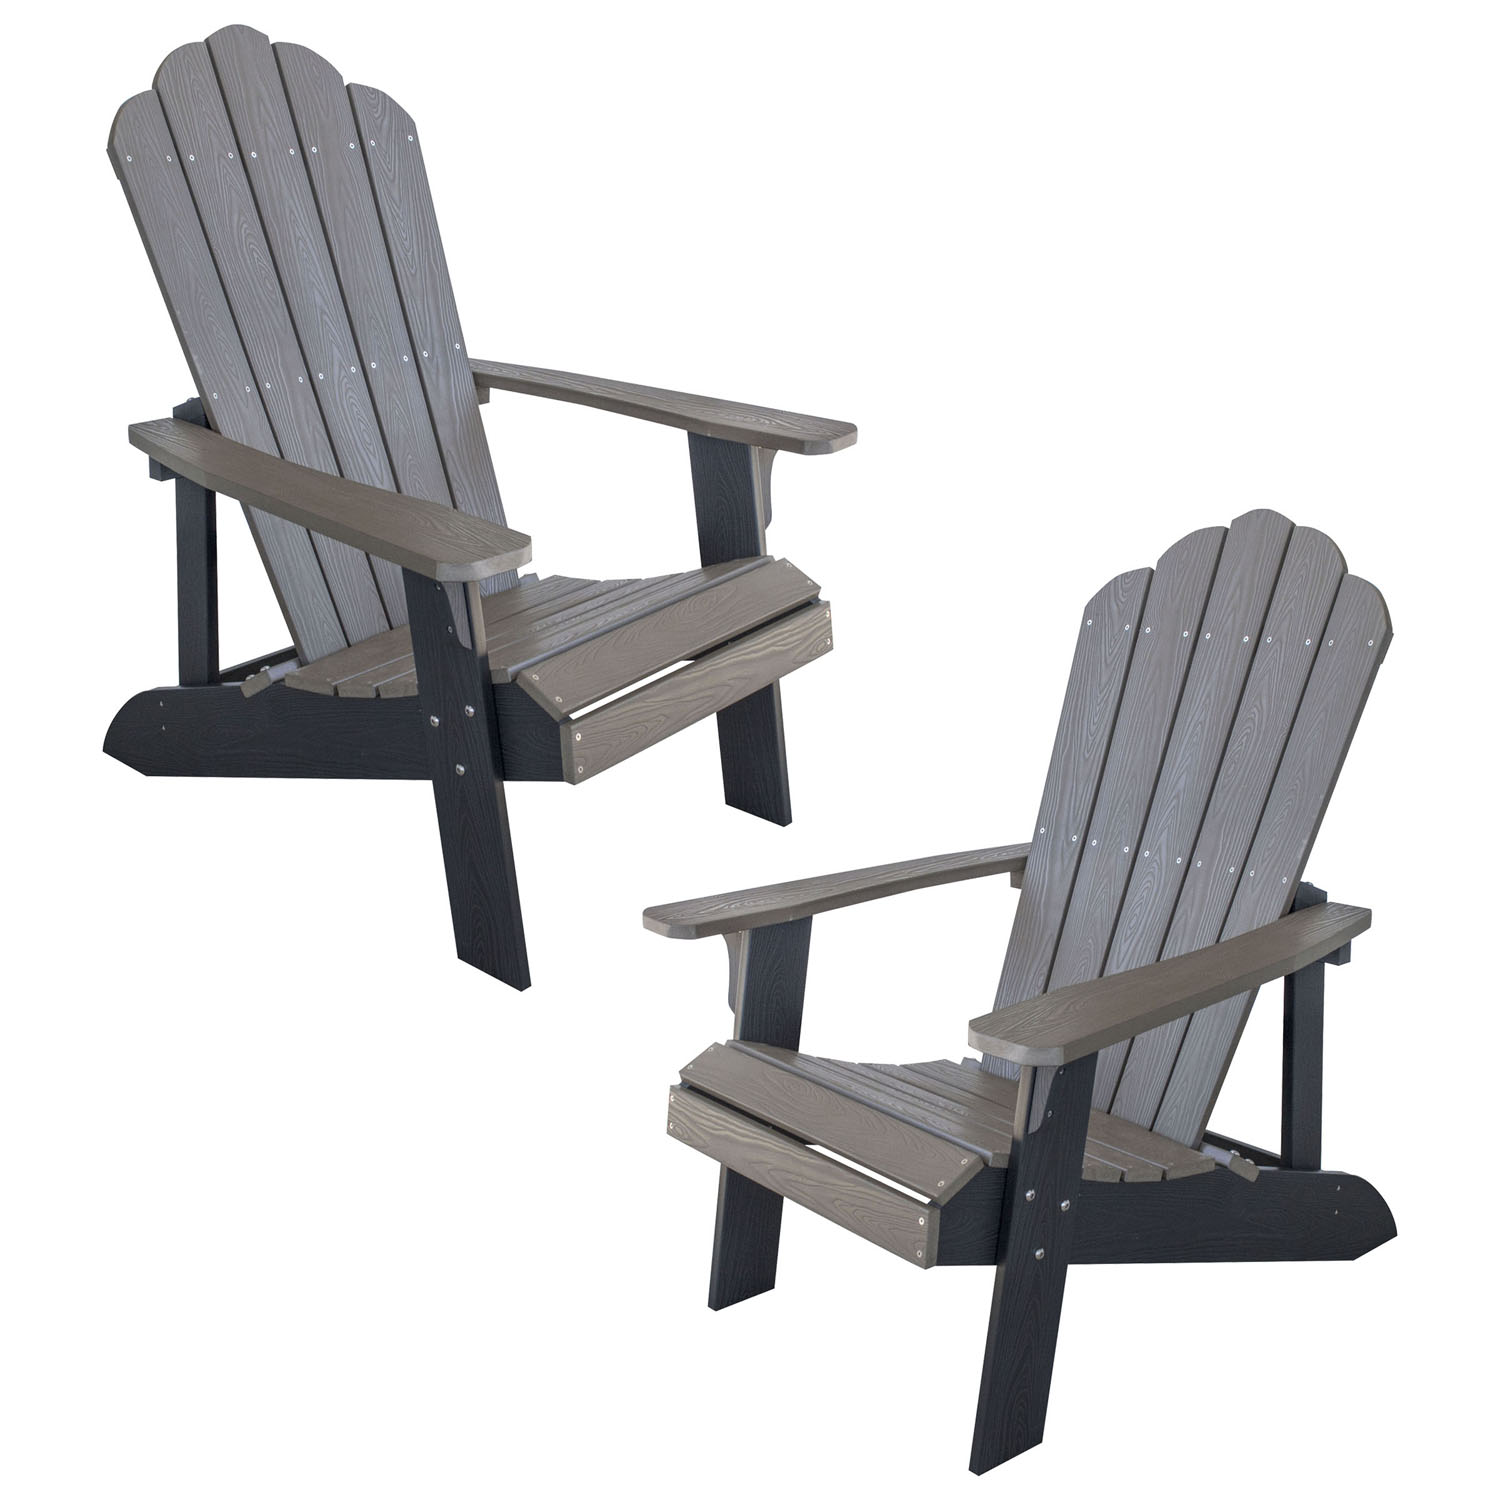 Simulated Wood Outdoor Two Tone Adirondack Chair, Driftwood with Black Accents, 2 Piece Set